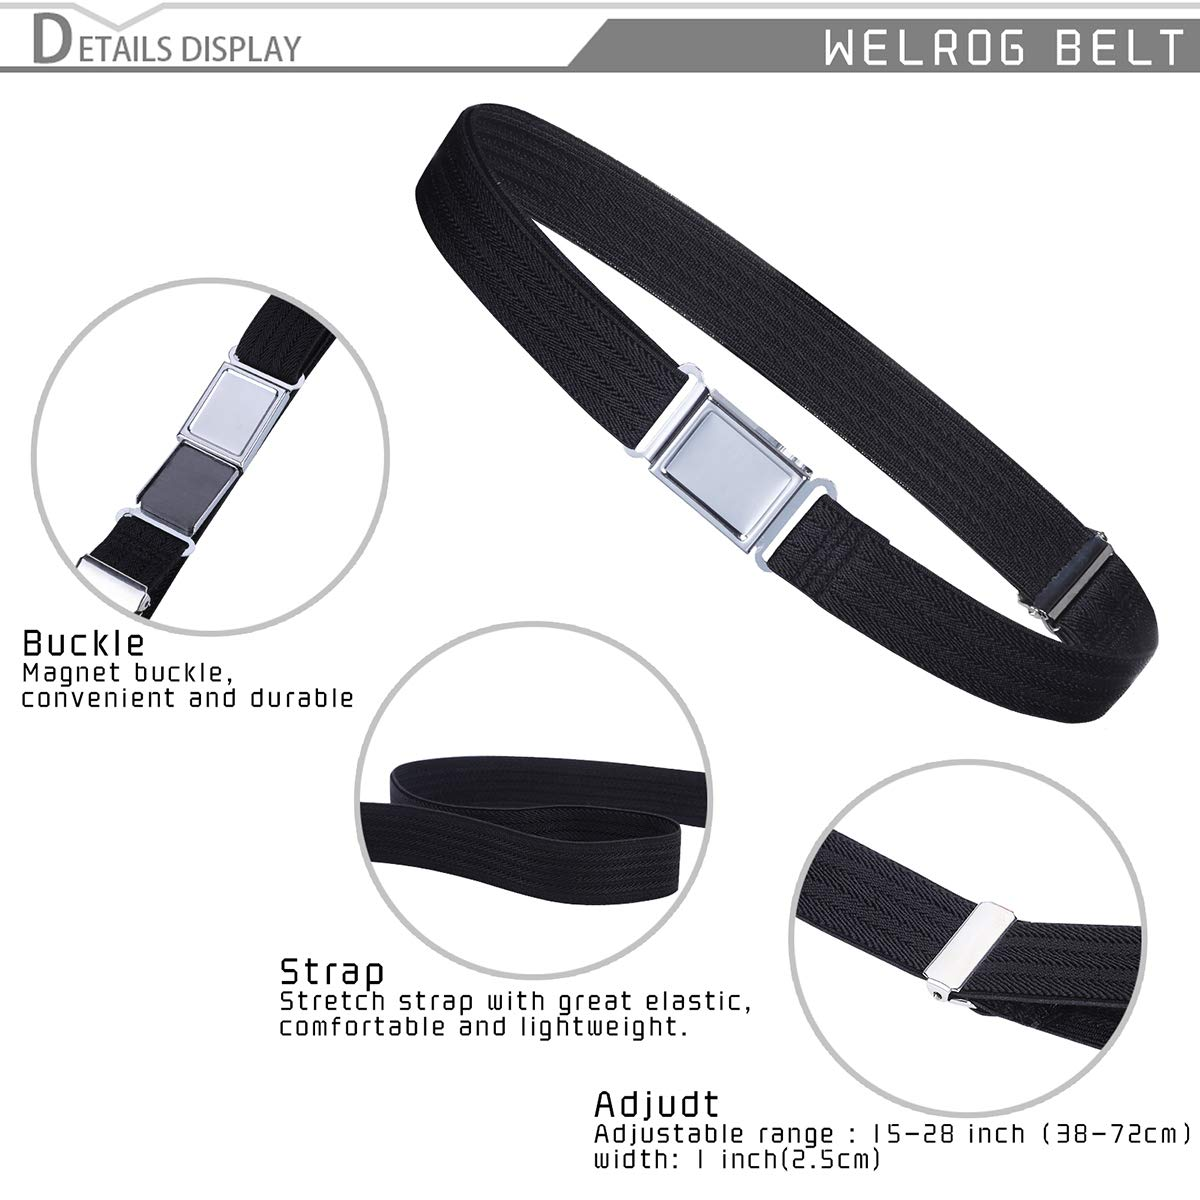 Kids Adjustable Magnetic Belt for Boys Girls Elastic Stretch Buckle Belts by WELROG